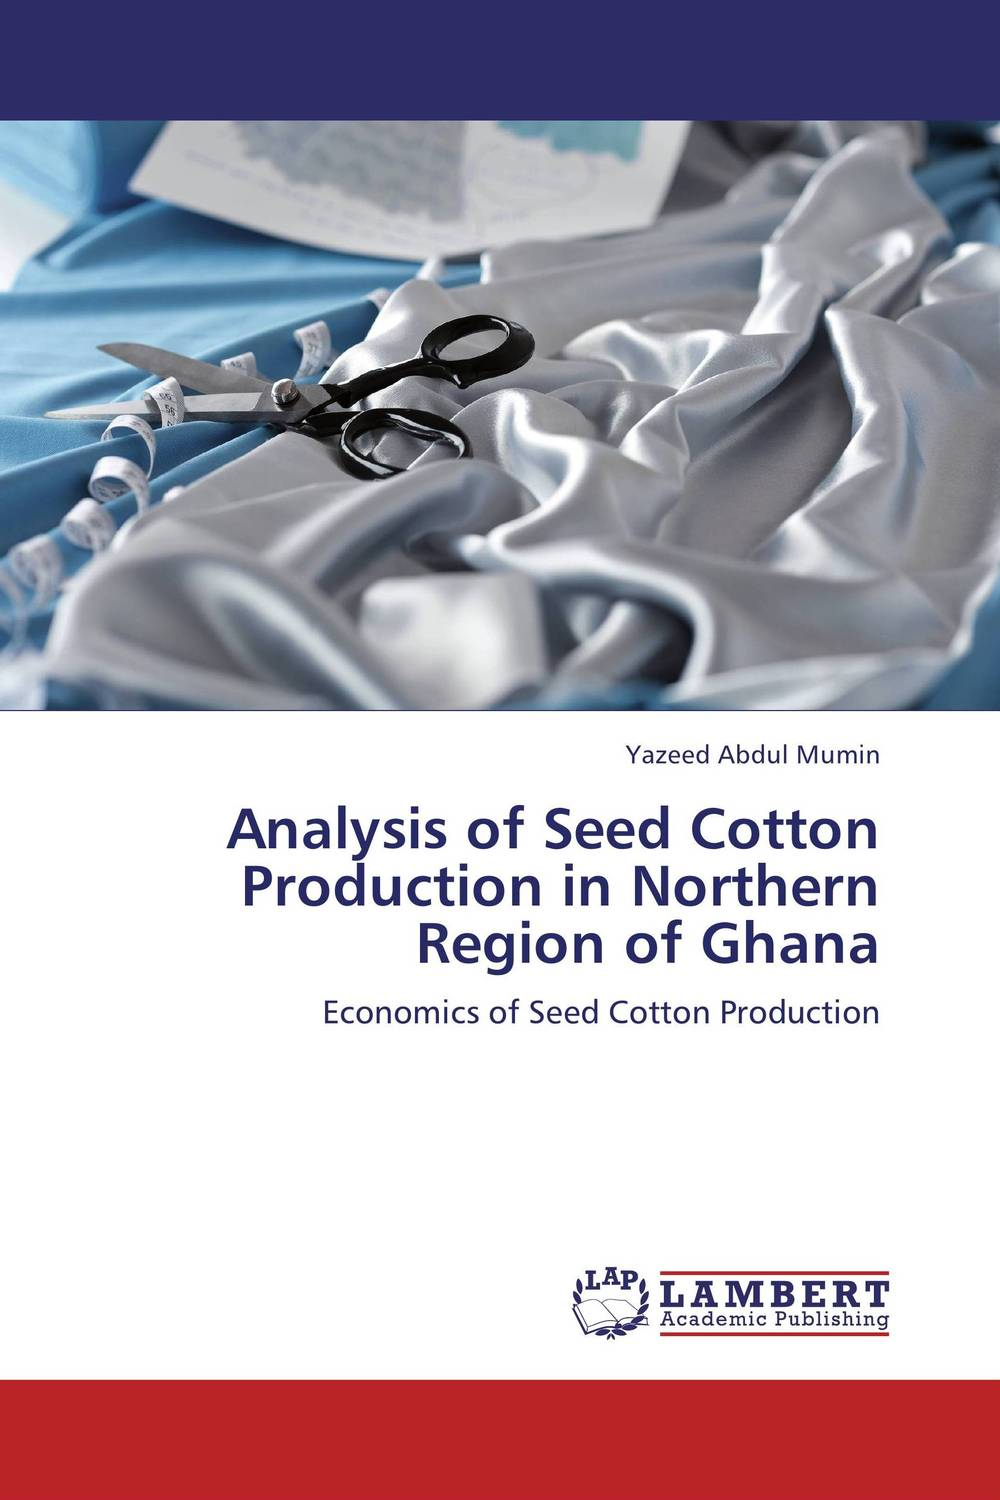 Analysis of Seed Cotton Production in Northern Region of Ghana muhammad firdaus sulaiman estimation of carbon footprint in jatropha curcas seed production